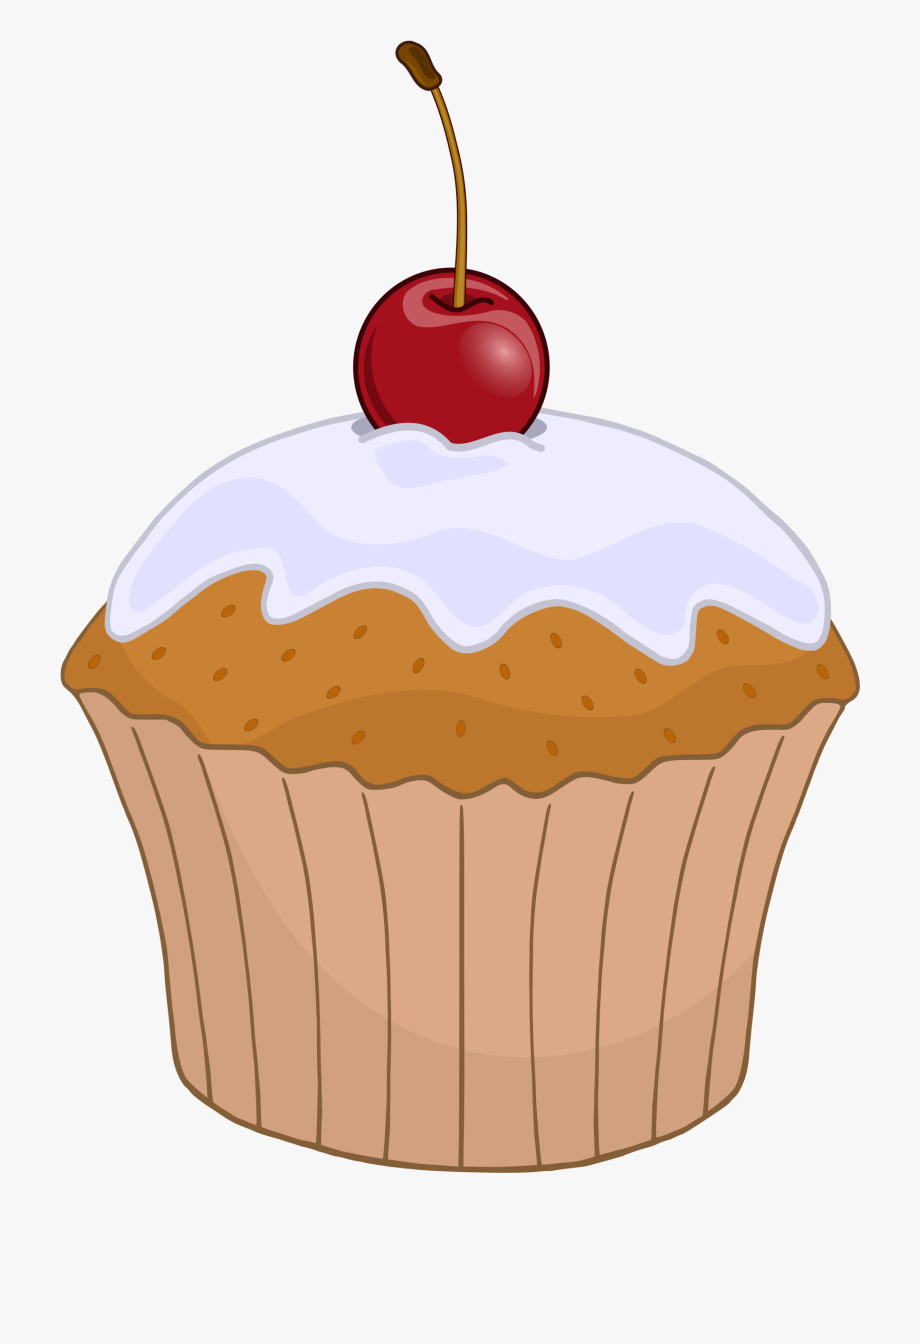 Muffins cupcake clip art. Muffin clipart animated